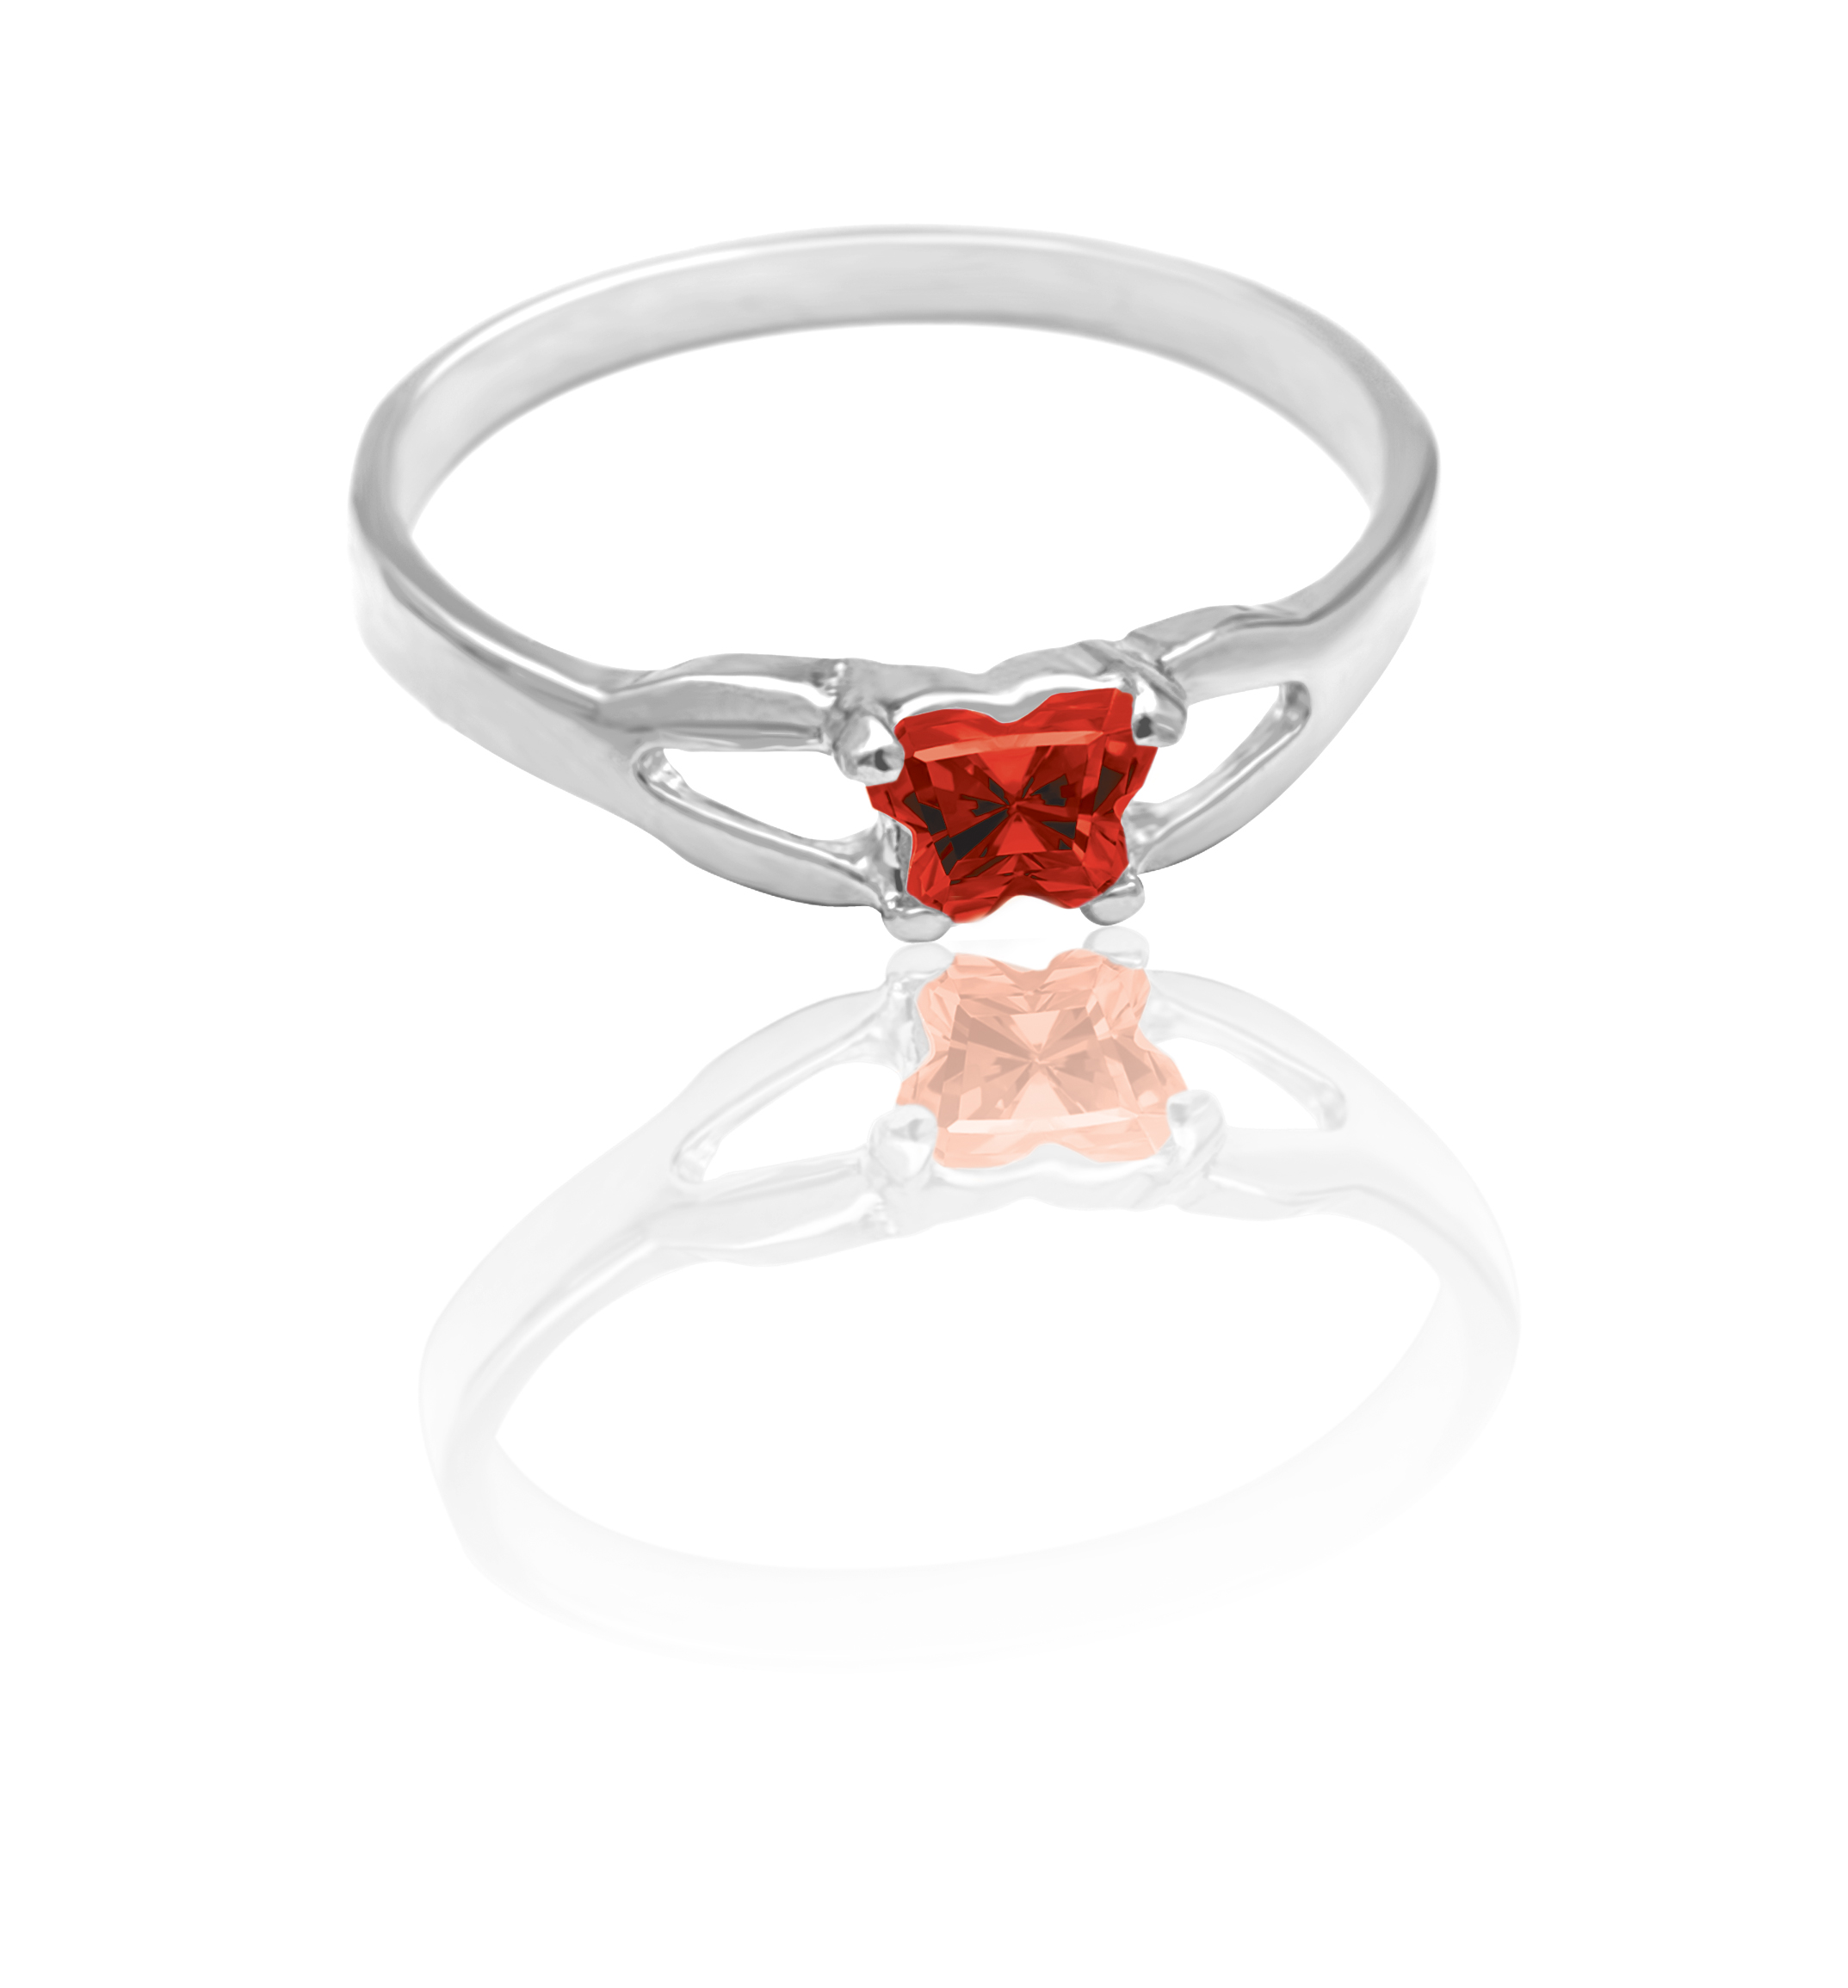 children ring in sterling silver with red cubic zirconia (month of January)*